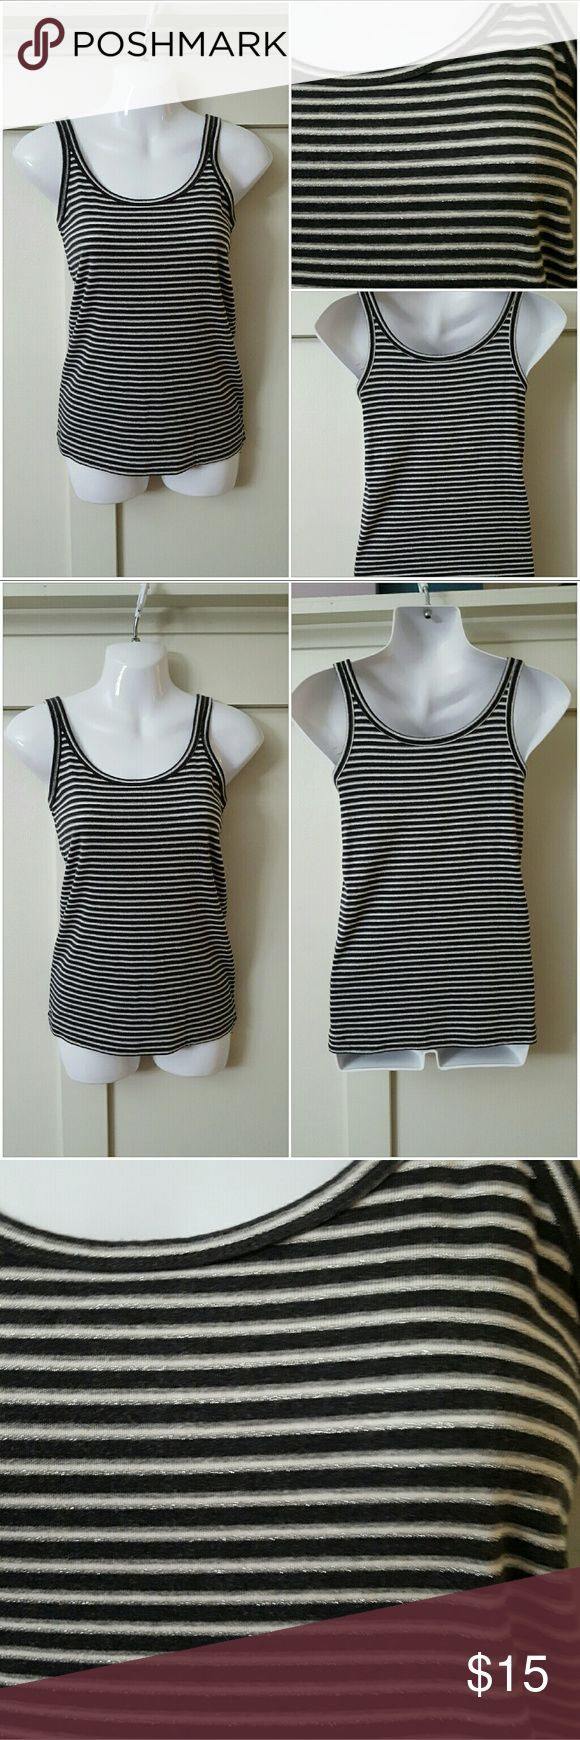 Banana Republic Small Gray White Silver Cami Banana Republic small gray, white, and metallic silver striped cami. Pre-owned and in good condition. 85% Cotton 9% Spandex 8% Other fibers Banana Republic Tops Camisoles